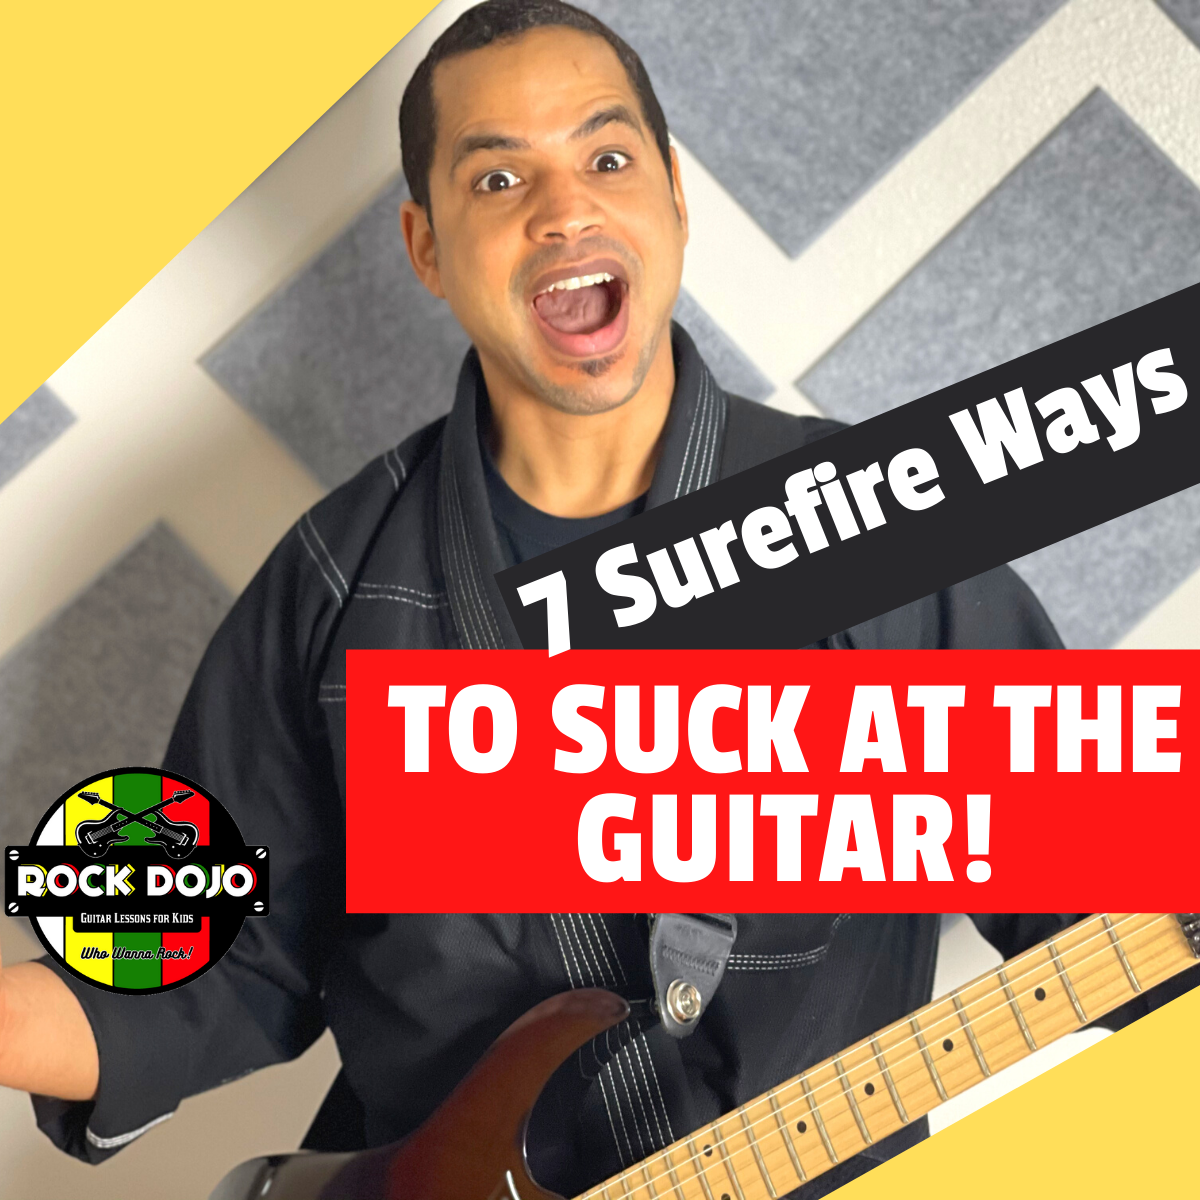 Learn the best way to suck at the guitar